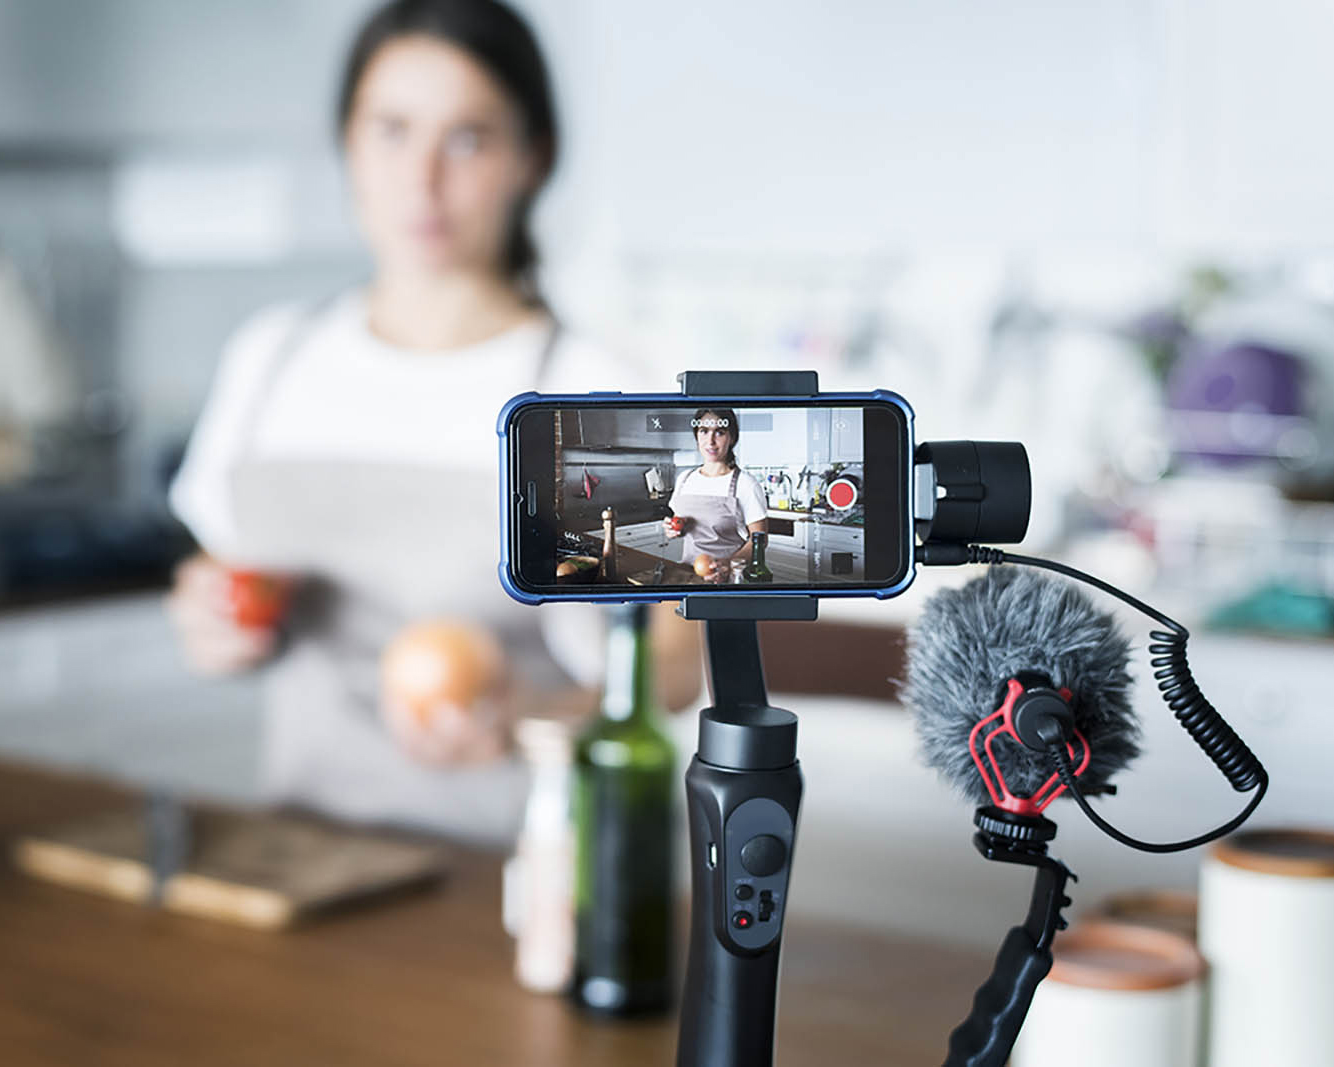 A phone videoing a young woman vlogger